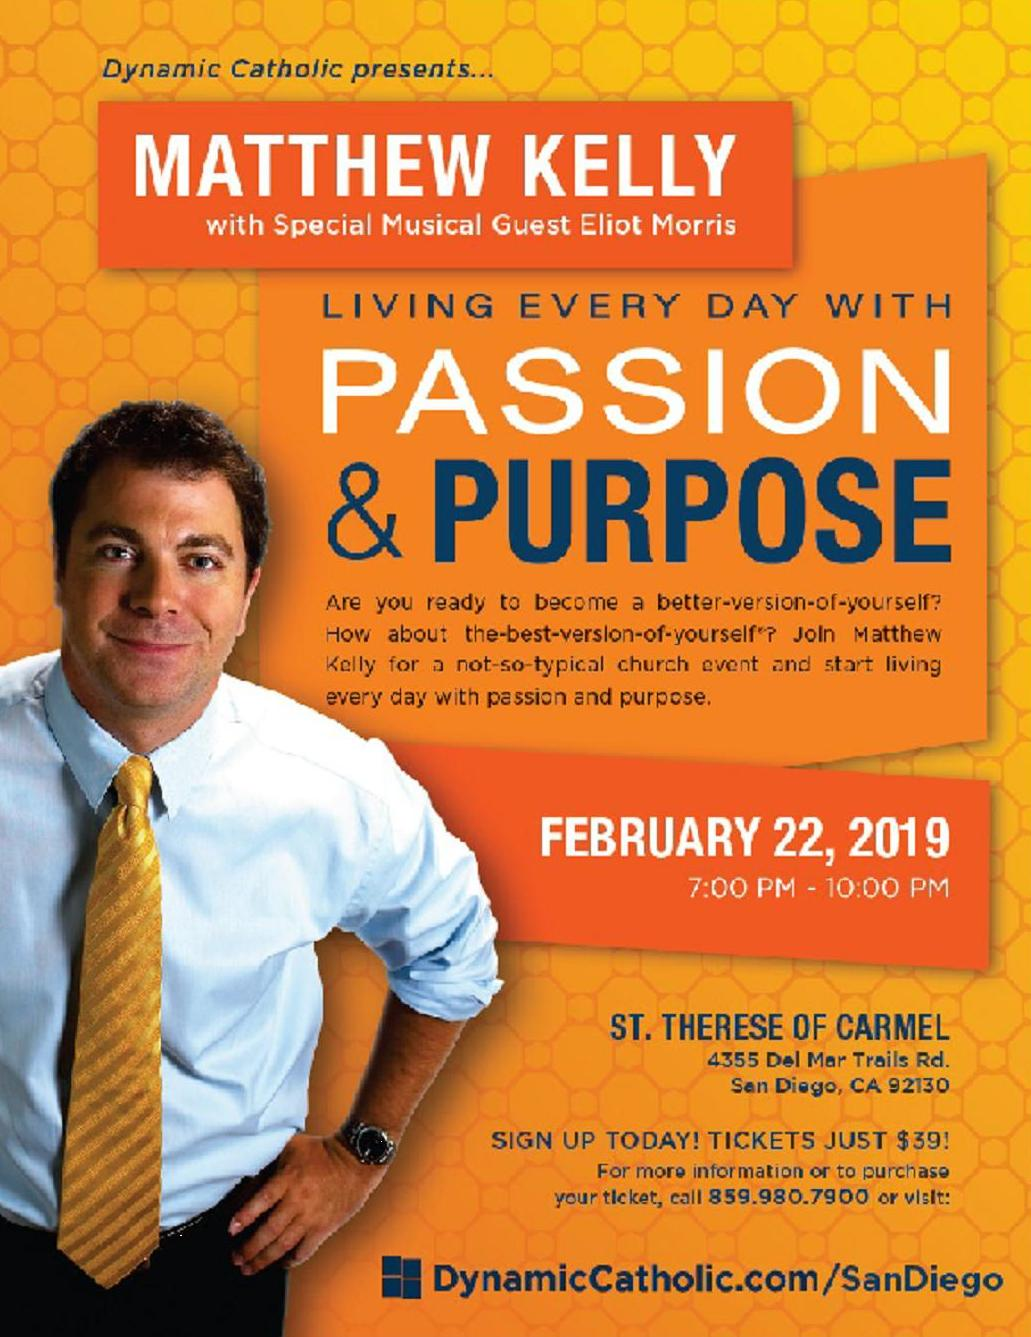 Matthew Kelly 'Living Every Day with Passion & Purpose'